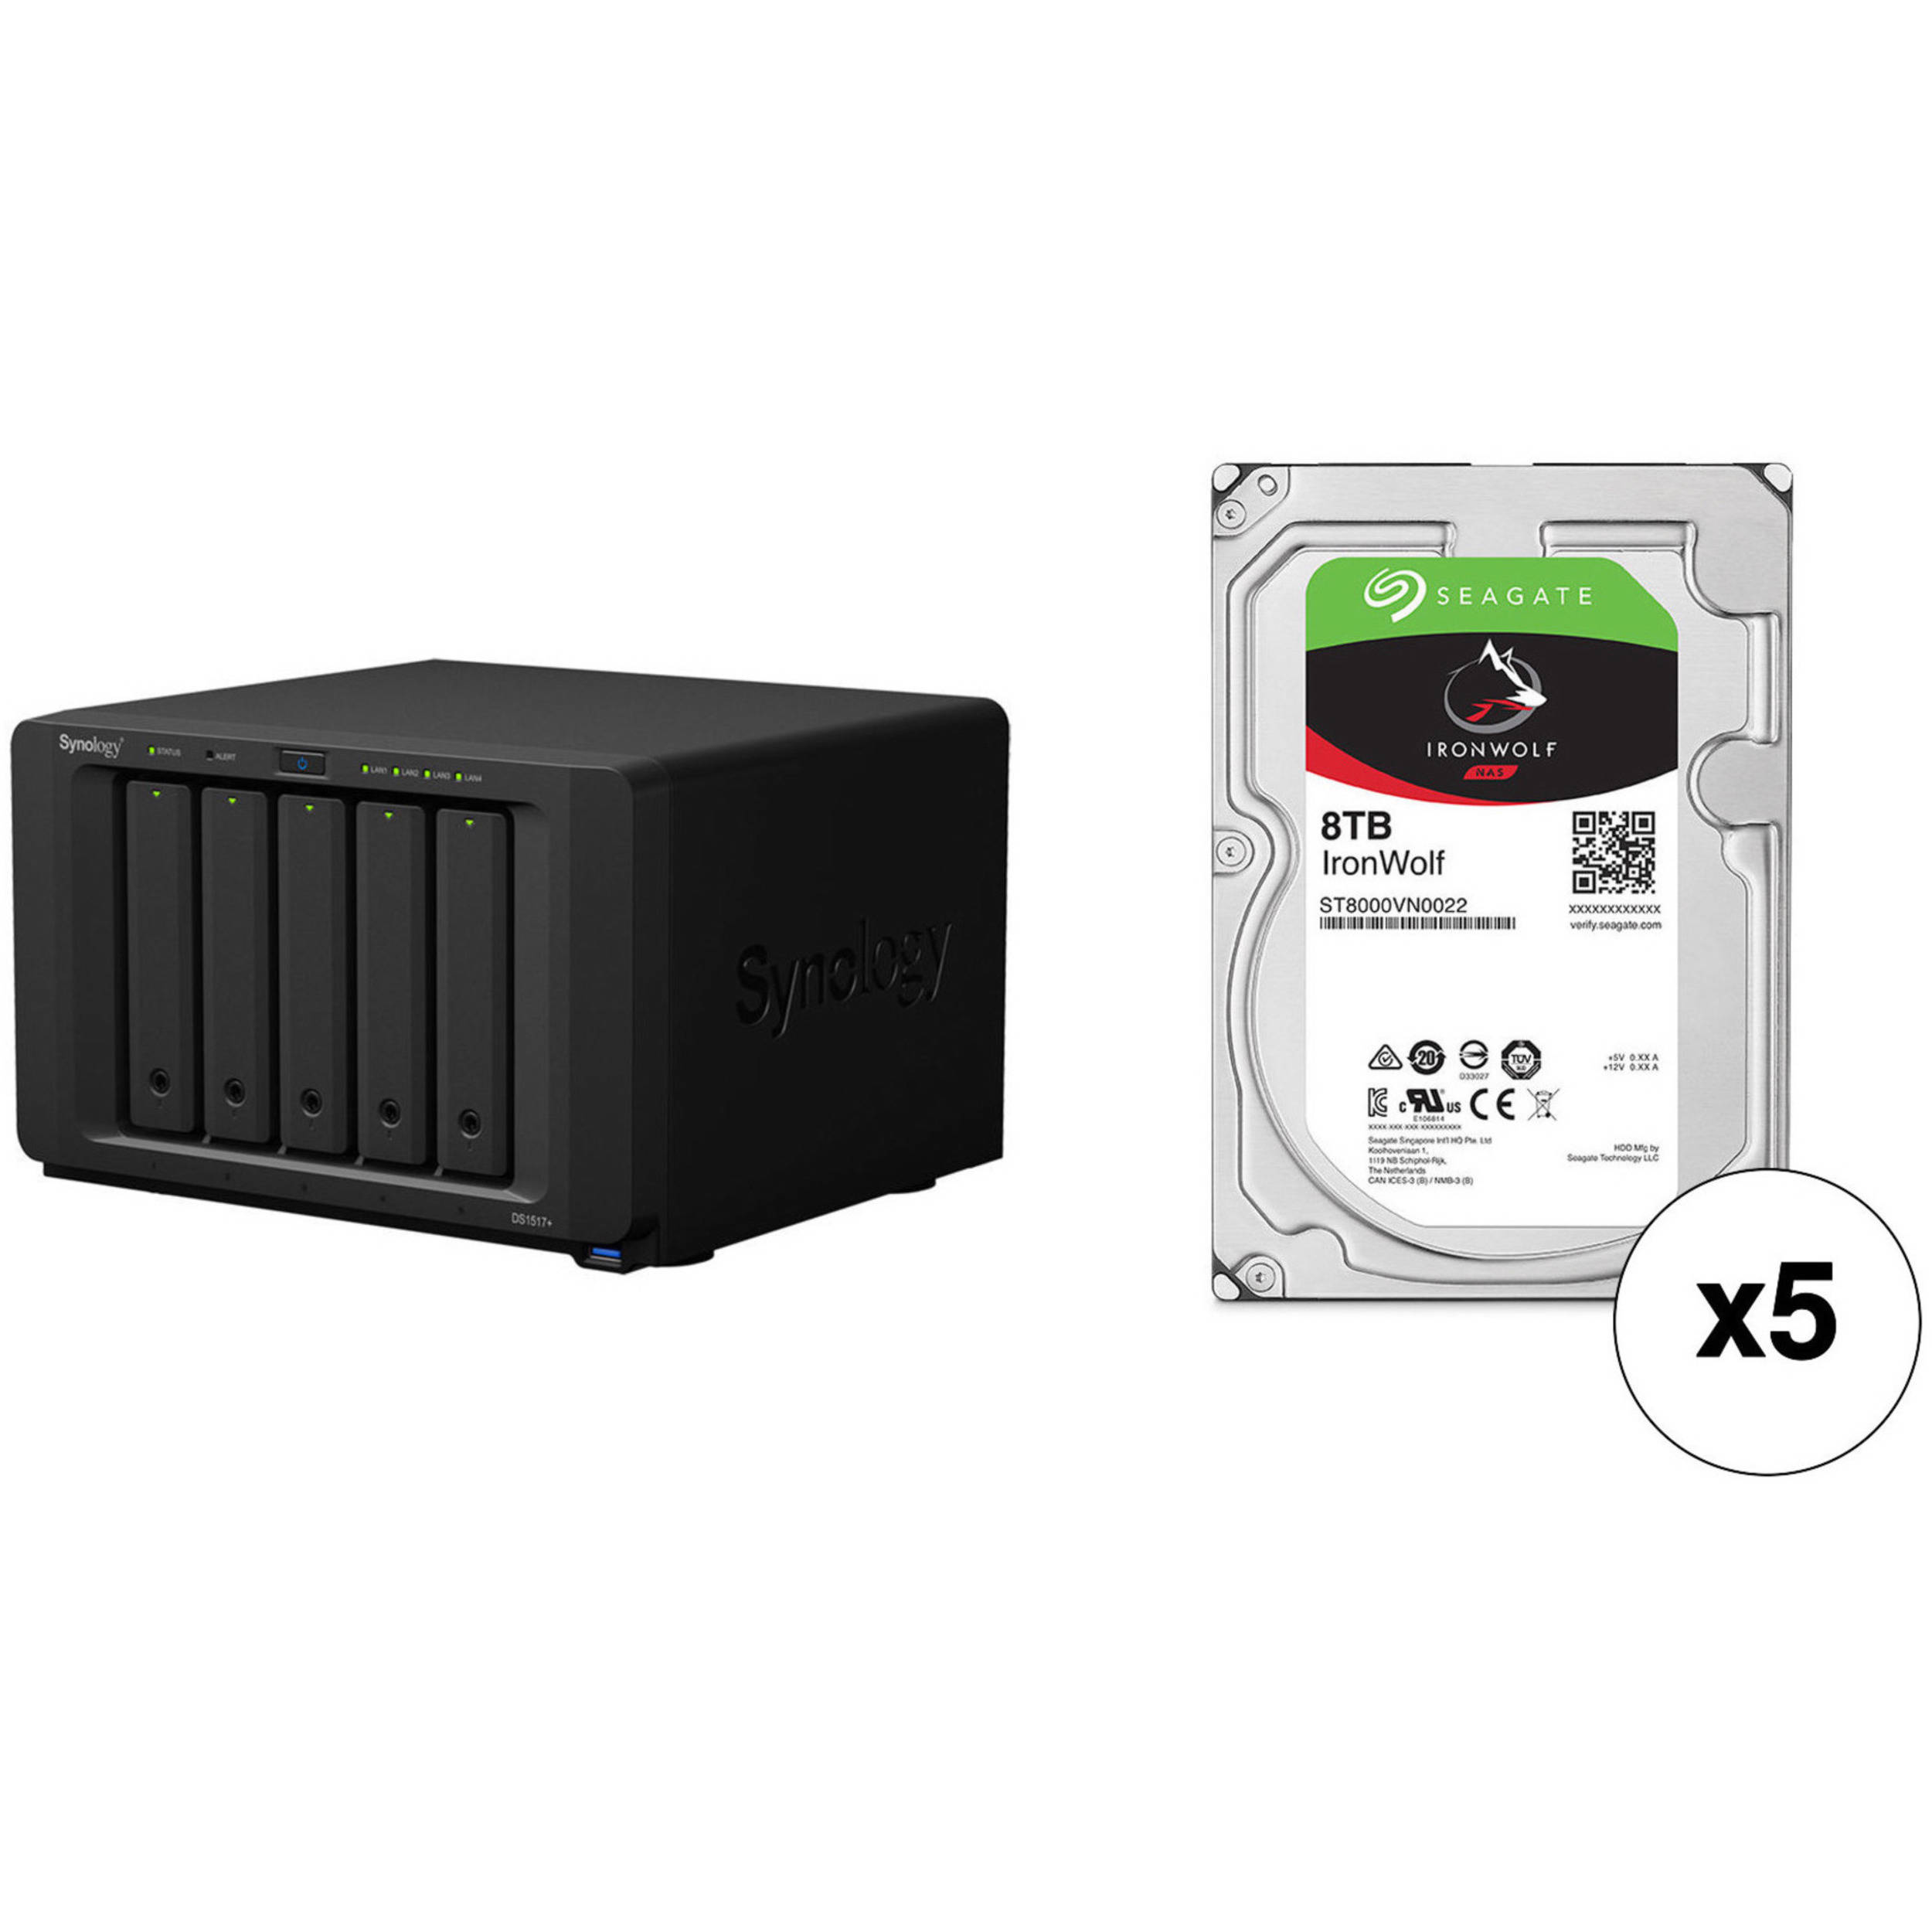 Synology DiskStation 40TB DS1517+ 5-Bay NAS Enclosure Kit with Seagate NAS  Drives (5 x 8TB)